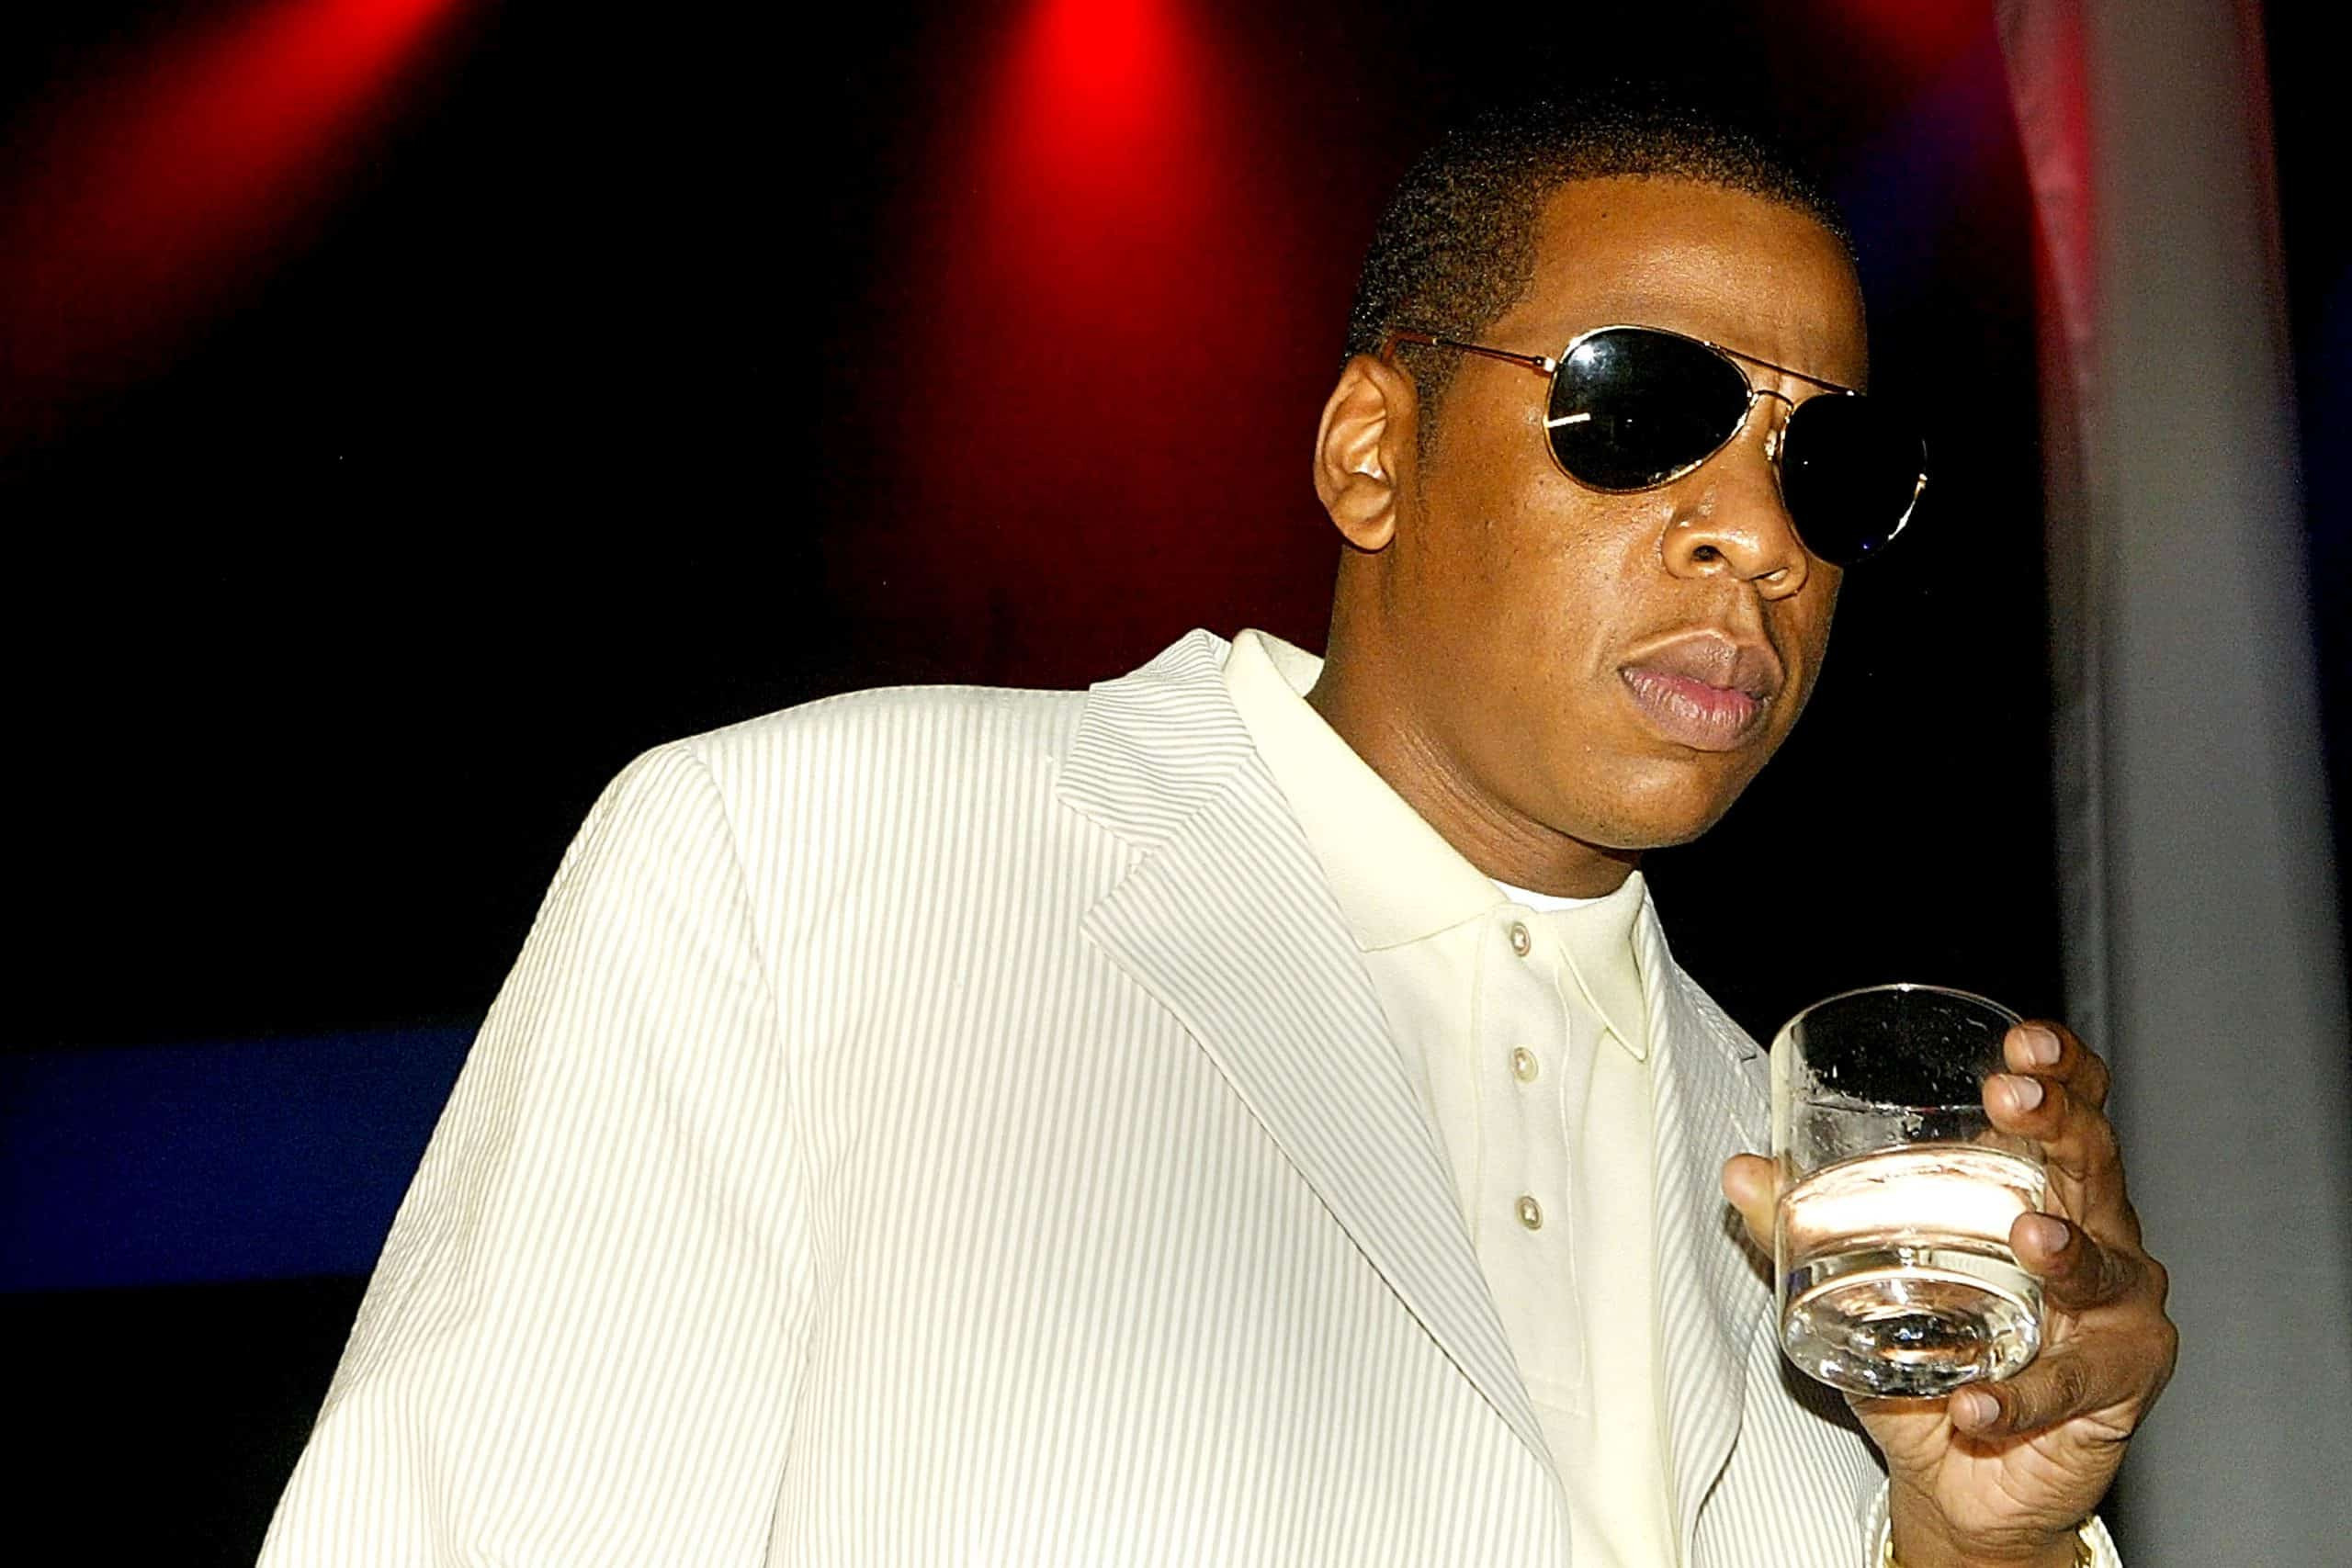 Jay-Z 'Becomes Hip-hop's First Ever Billionaire'